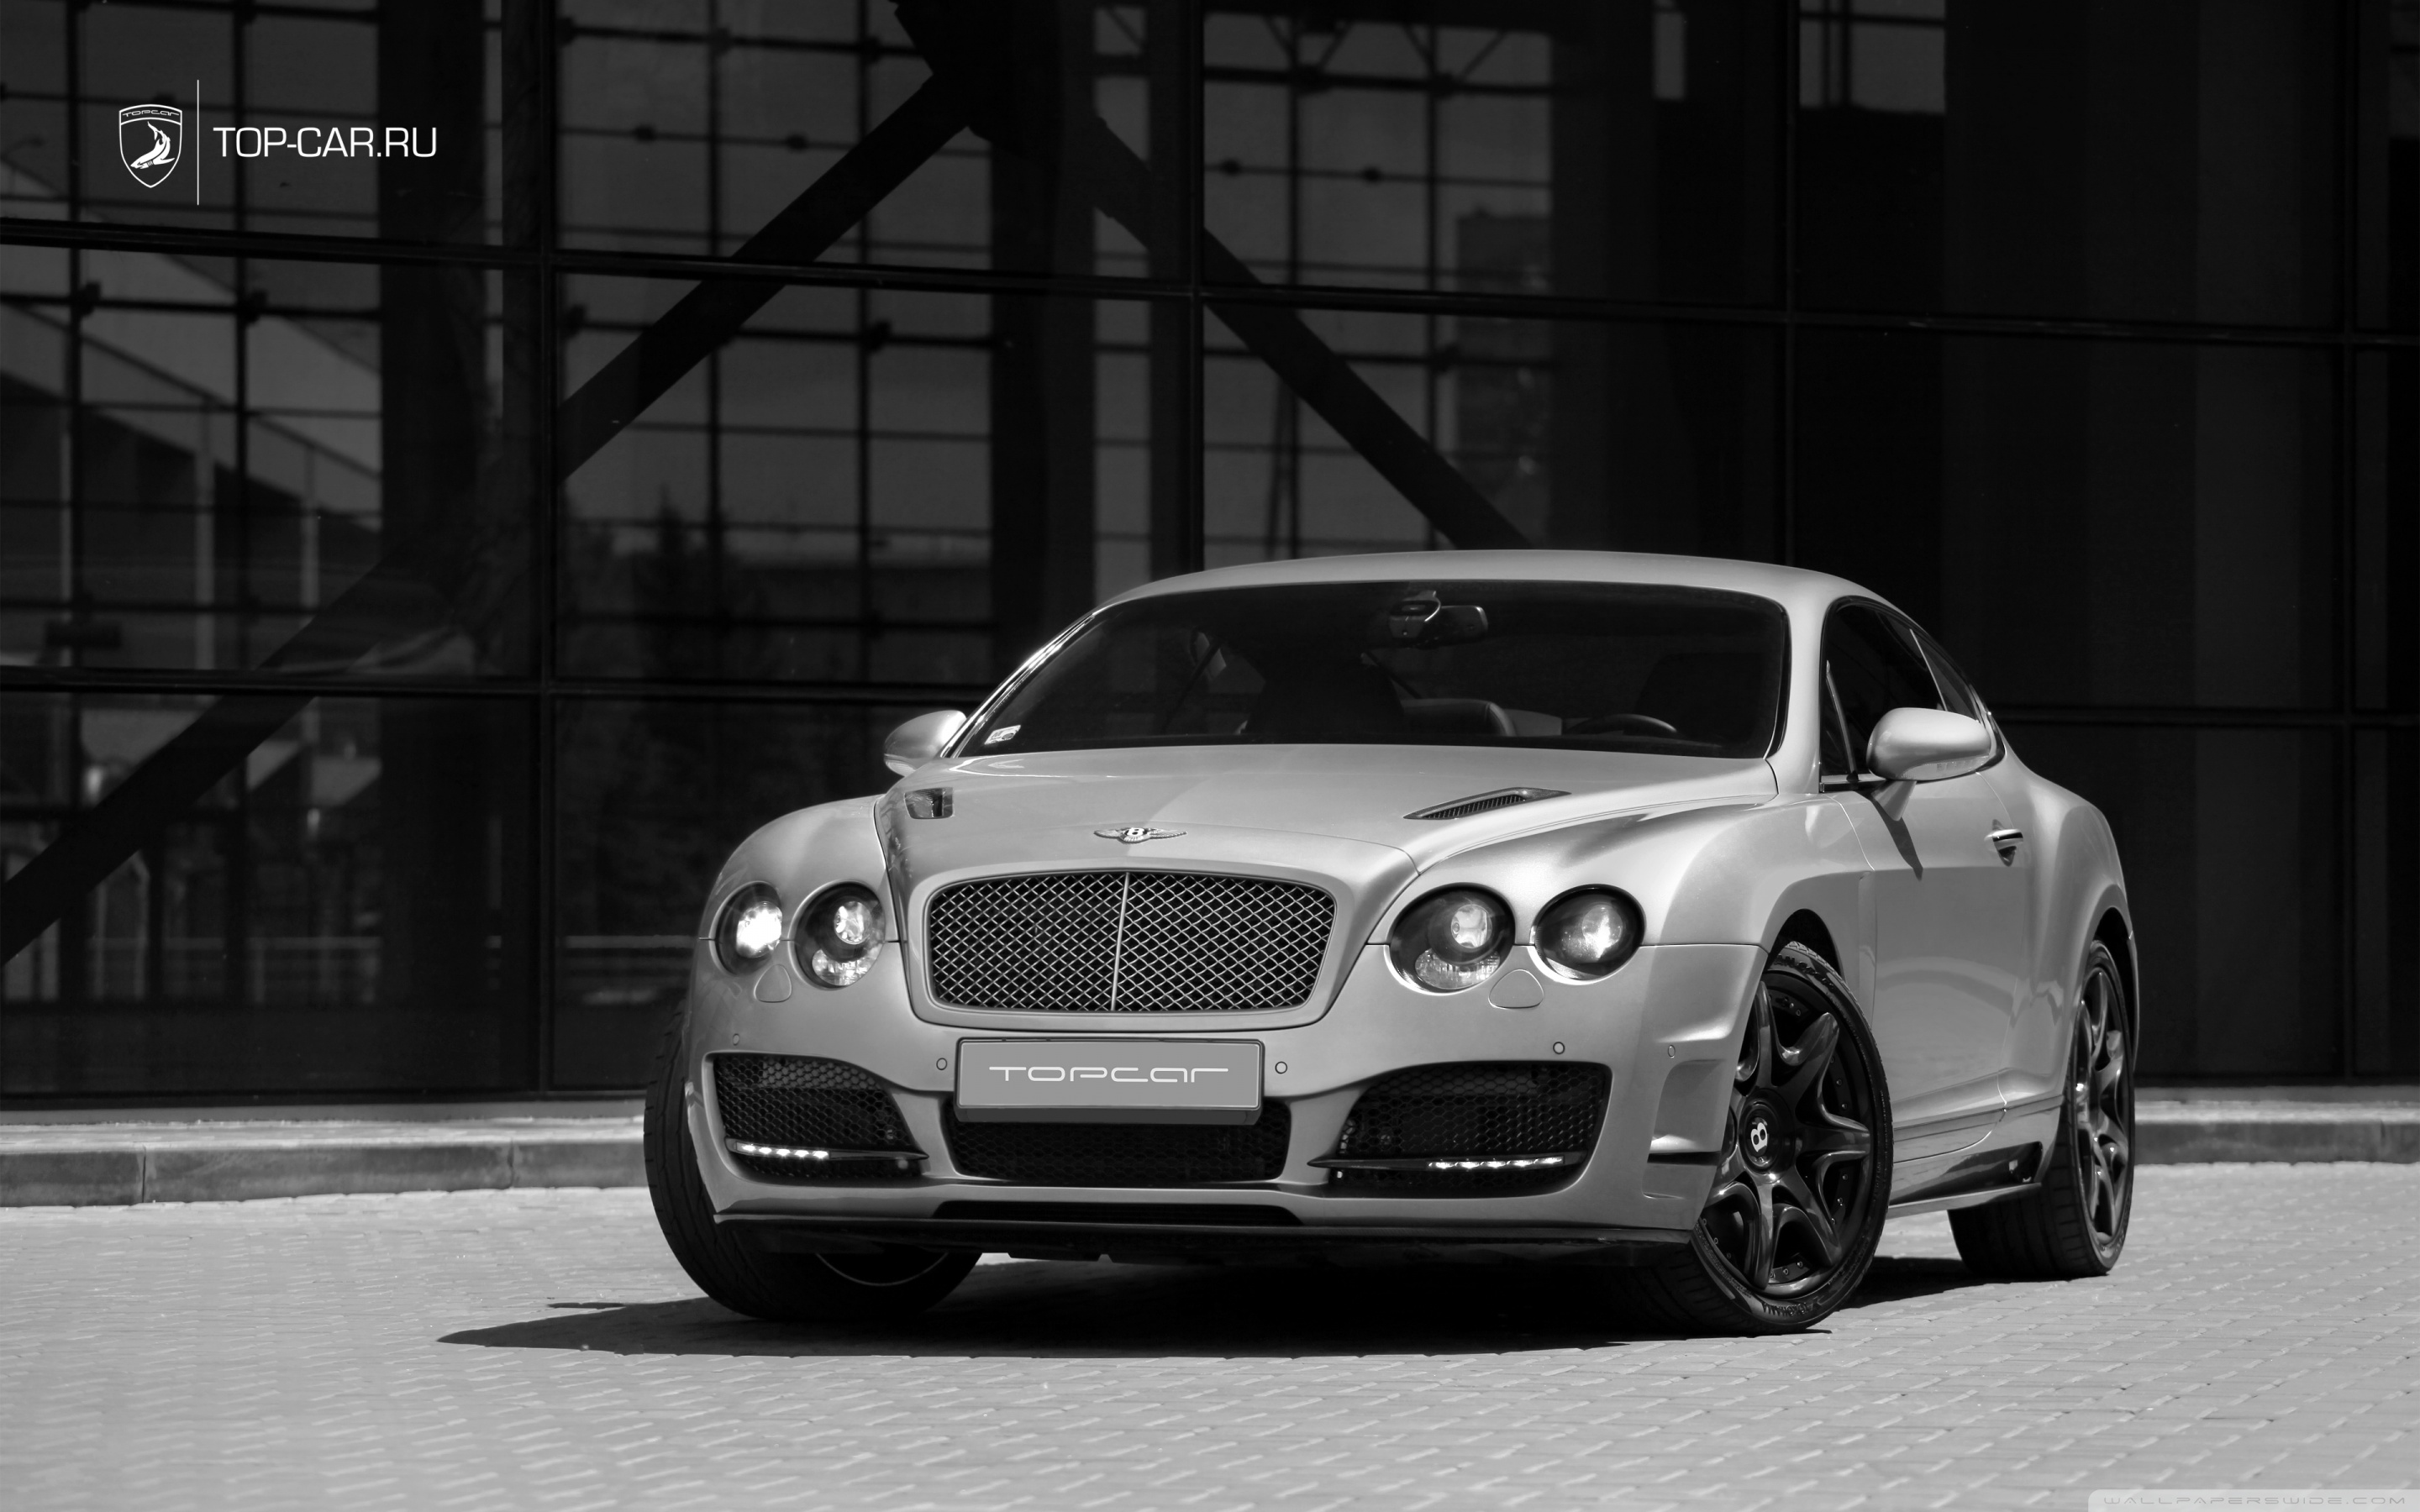 2880x1800 - Bentley Continental GT Wallpapers 28